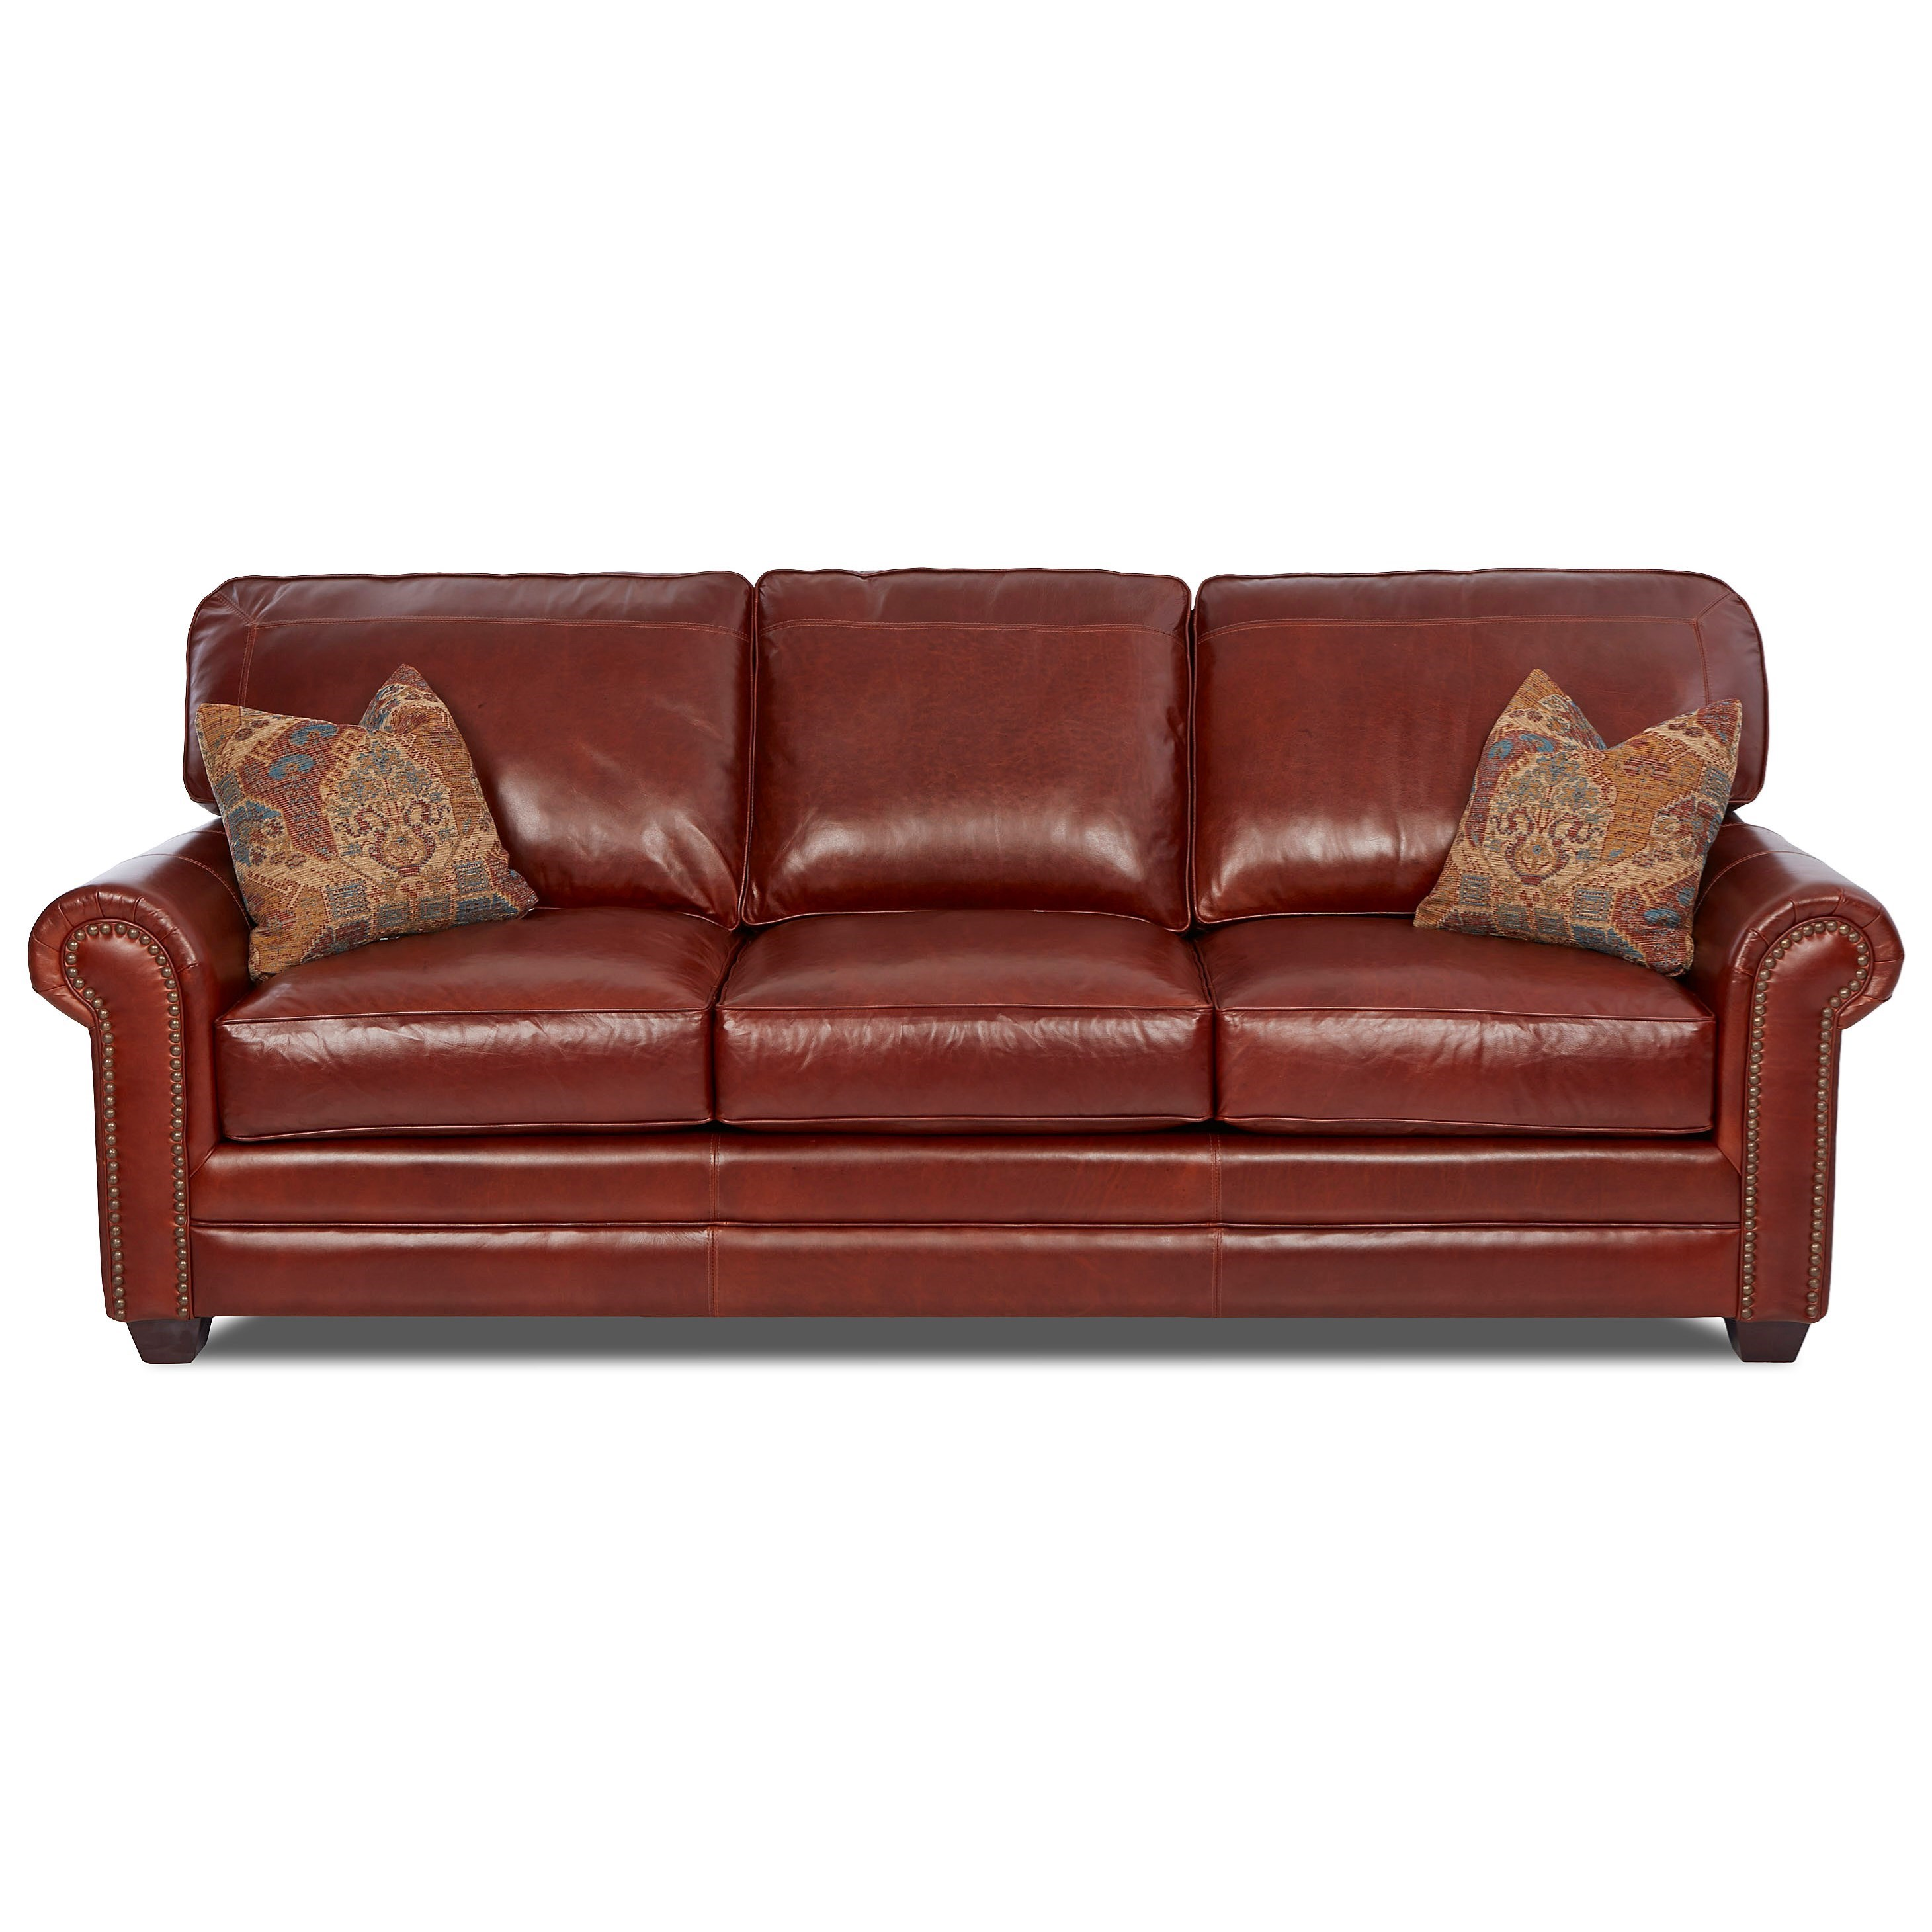 Epic Sofa w/ Nailheads & Pillows by Klaussner at Northeast Factory Direct